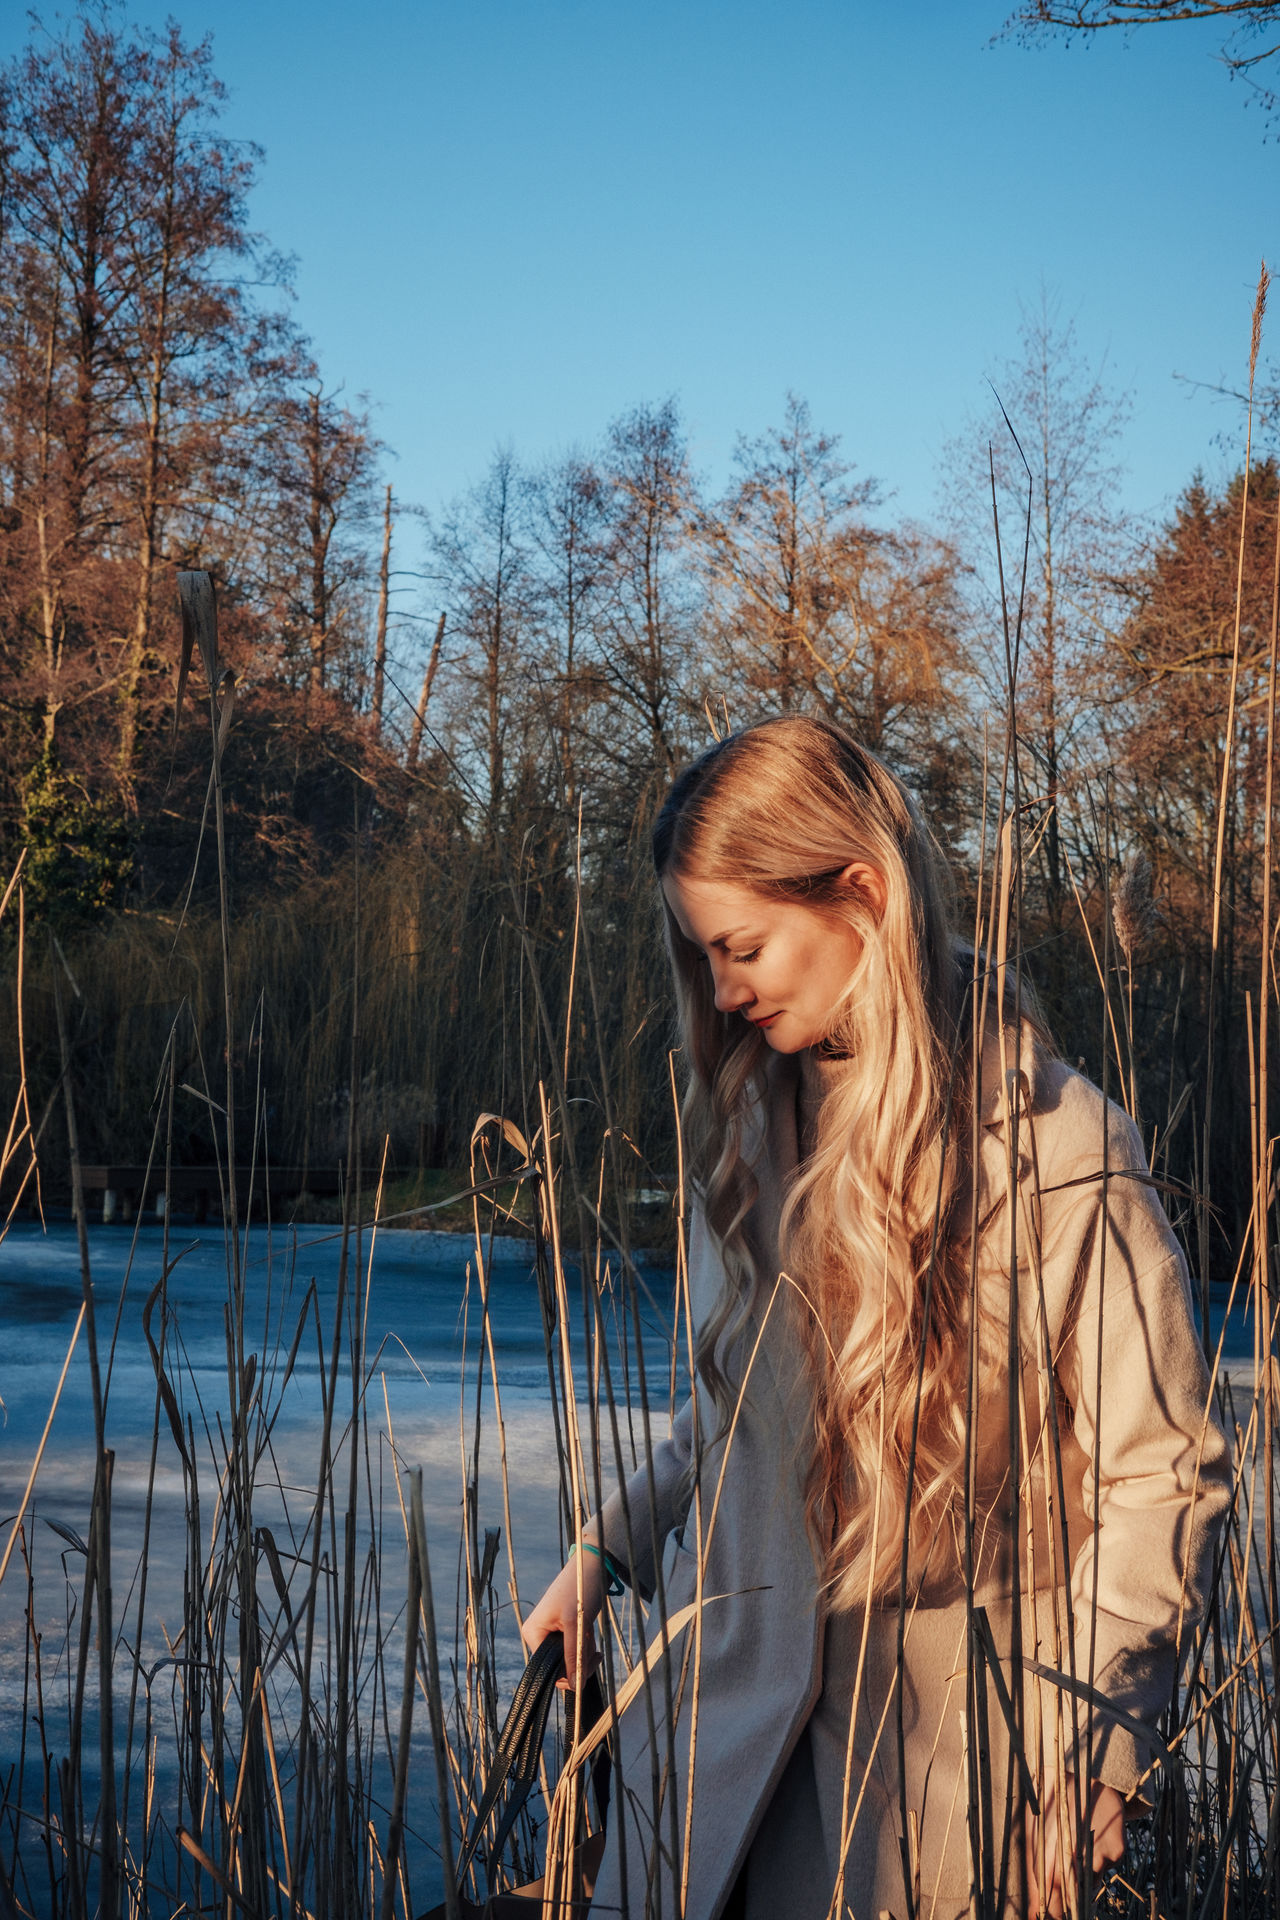 Catching the beautiful winter light. Adult Autumn Beauty In Nature Blond Hair Day Lake Leisure Activity Nature One Person One Woman Only One Young Woman Only Only Women Outdoors People Portrait Reed - Grass Family Sky Standing Tranquility Tree Waist Up Water Winter Women Young Adult